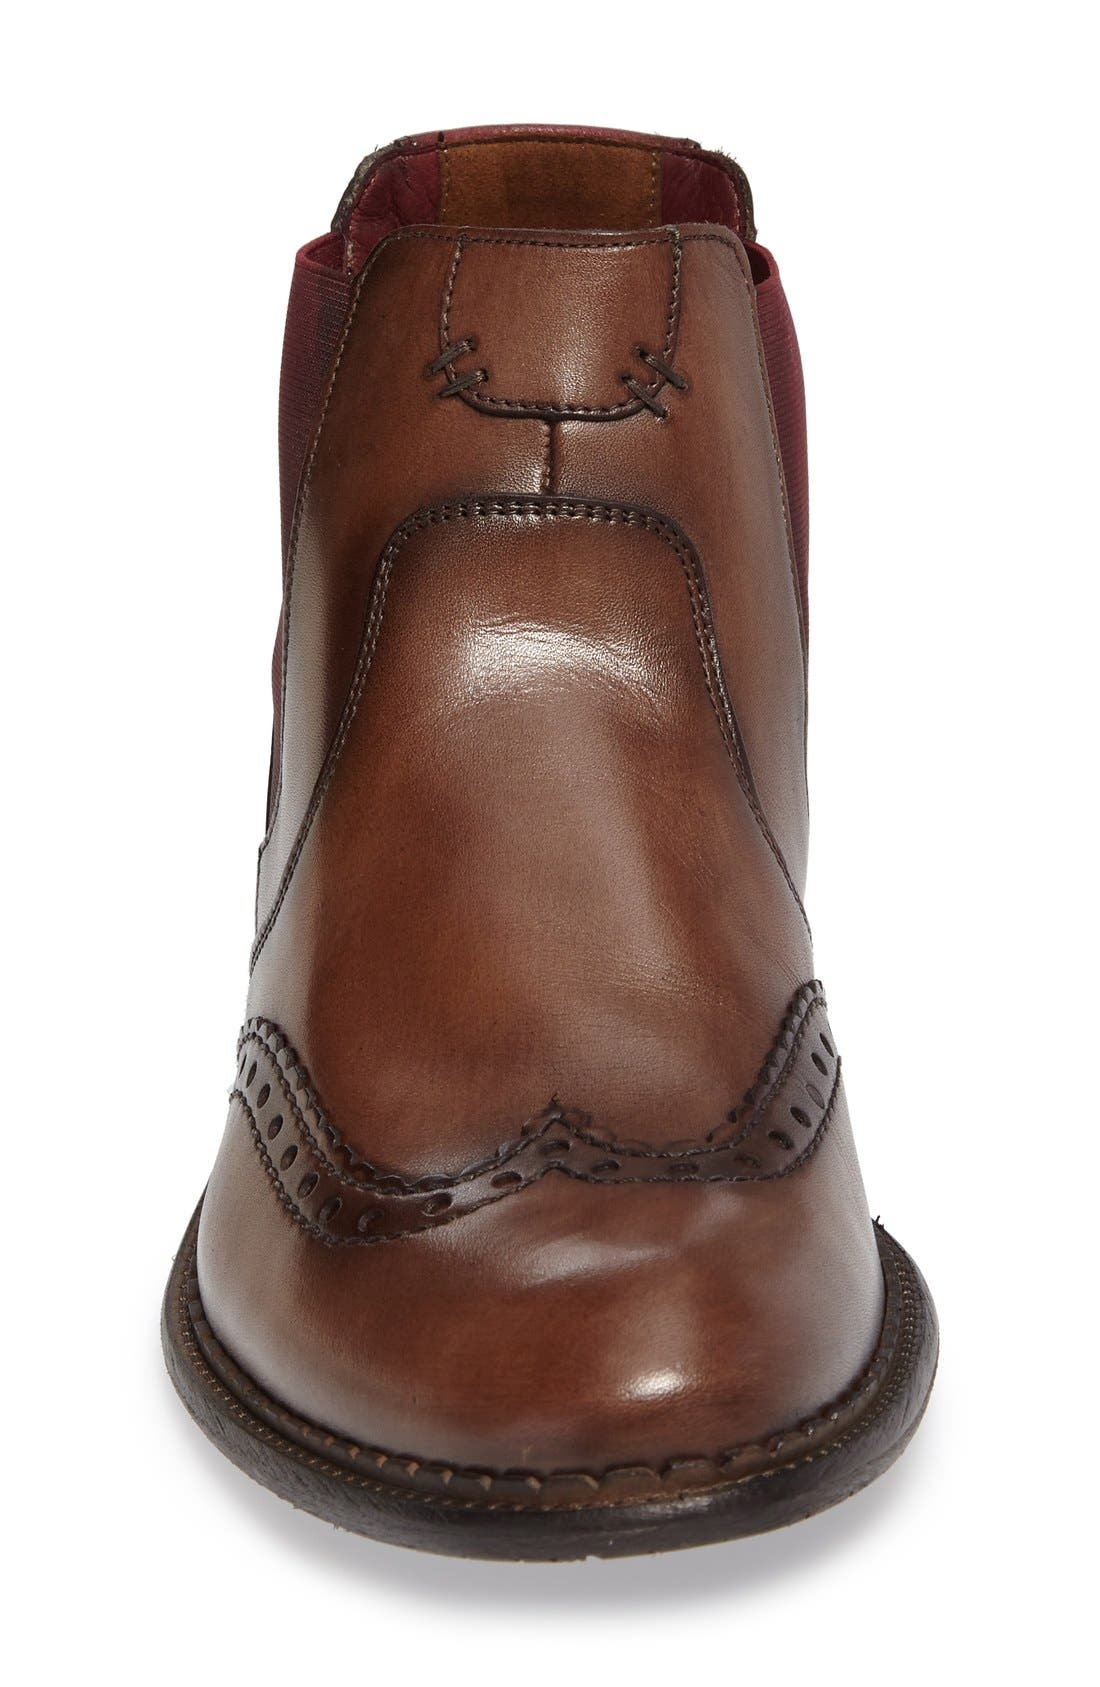 Grenoble Wingtip Chelsea Boot,                             Alternate thumbnail 3, color,                             Tobacco/ Bordo